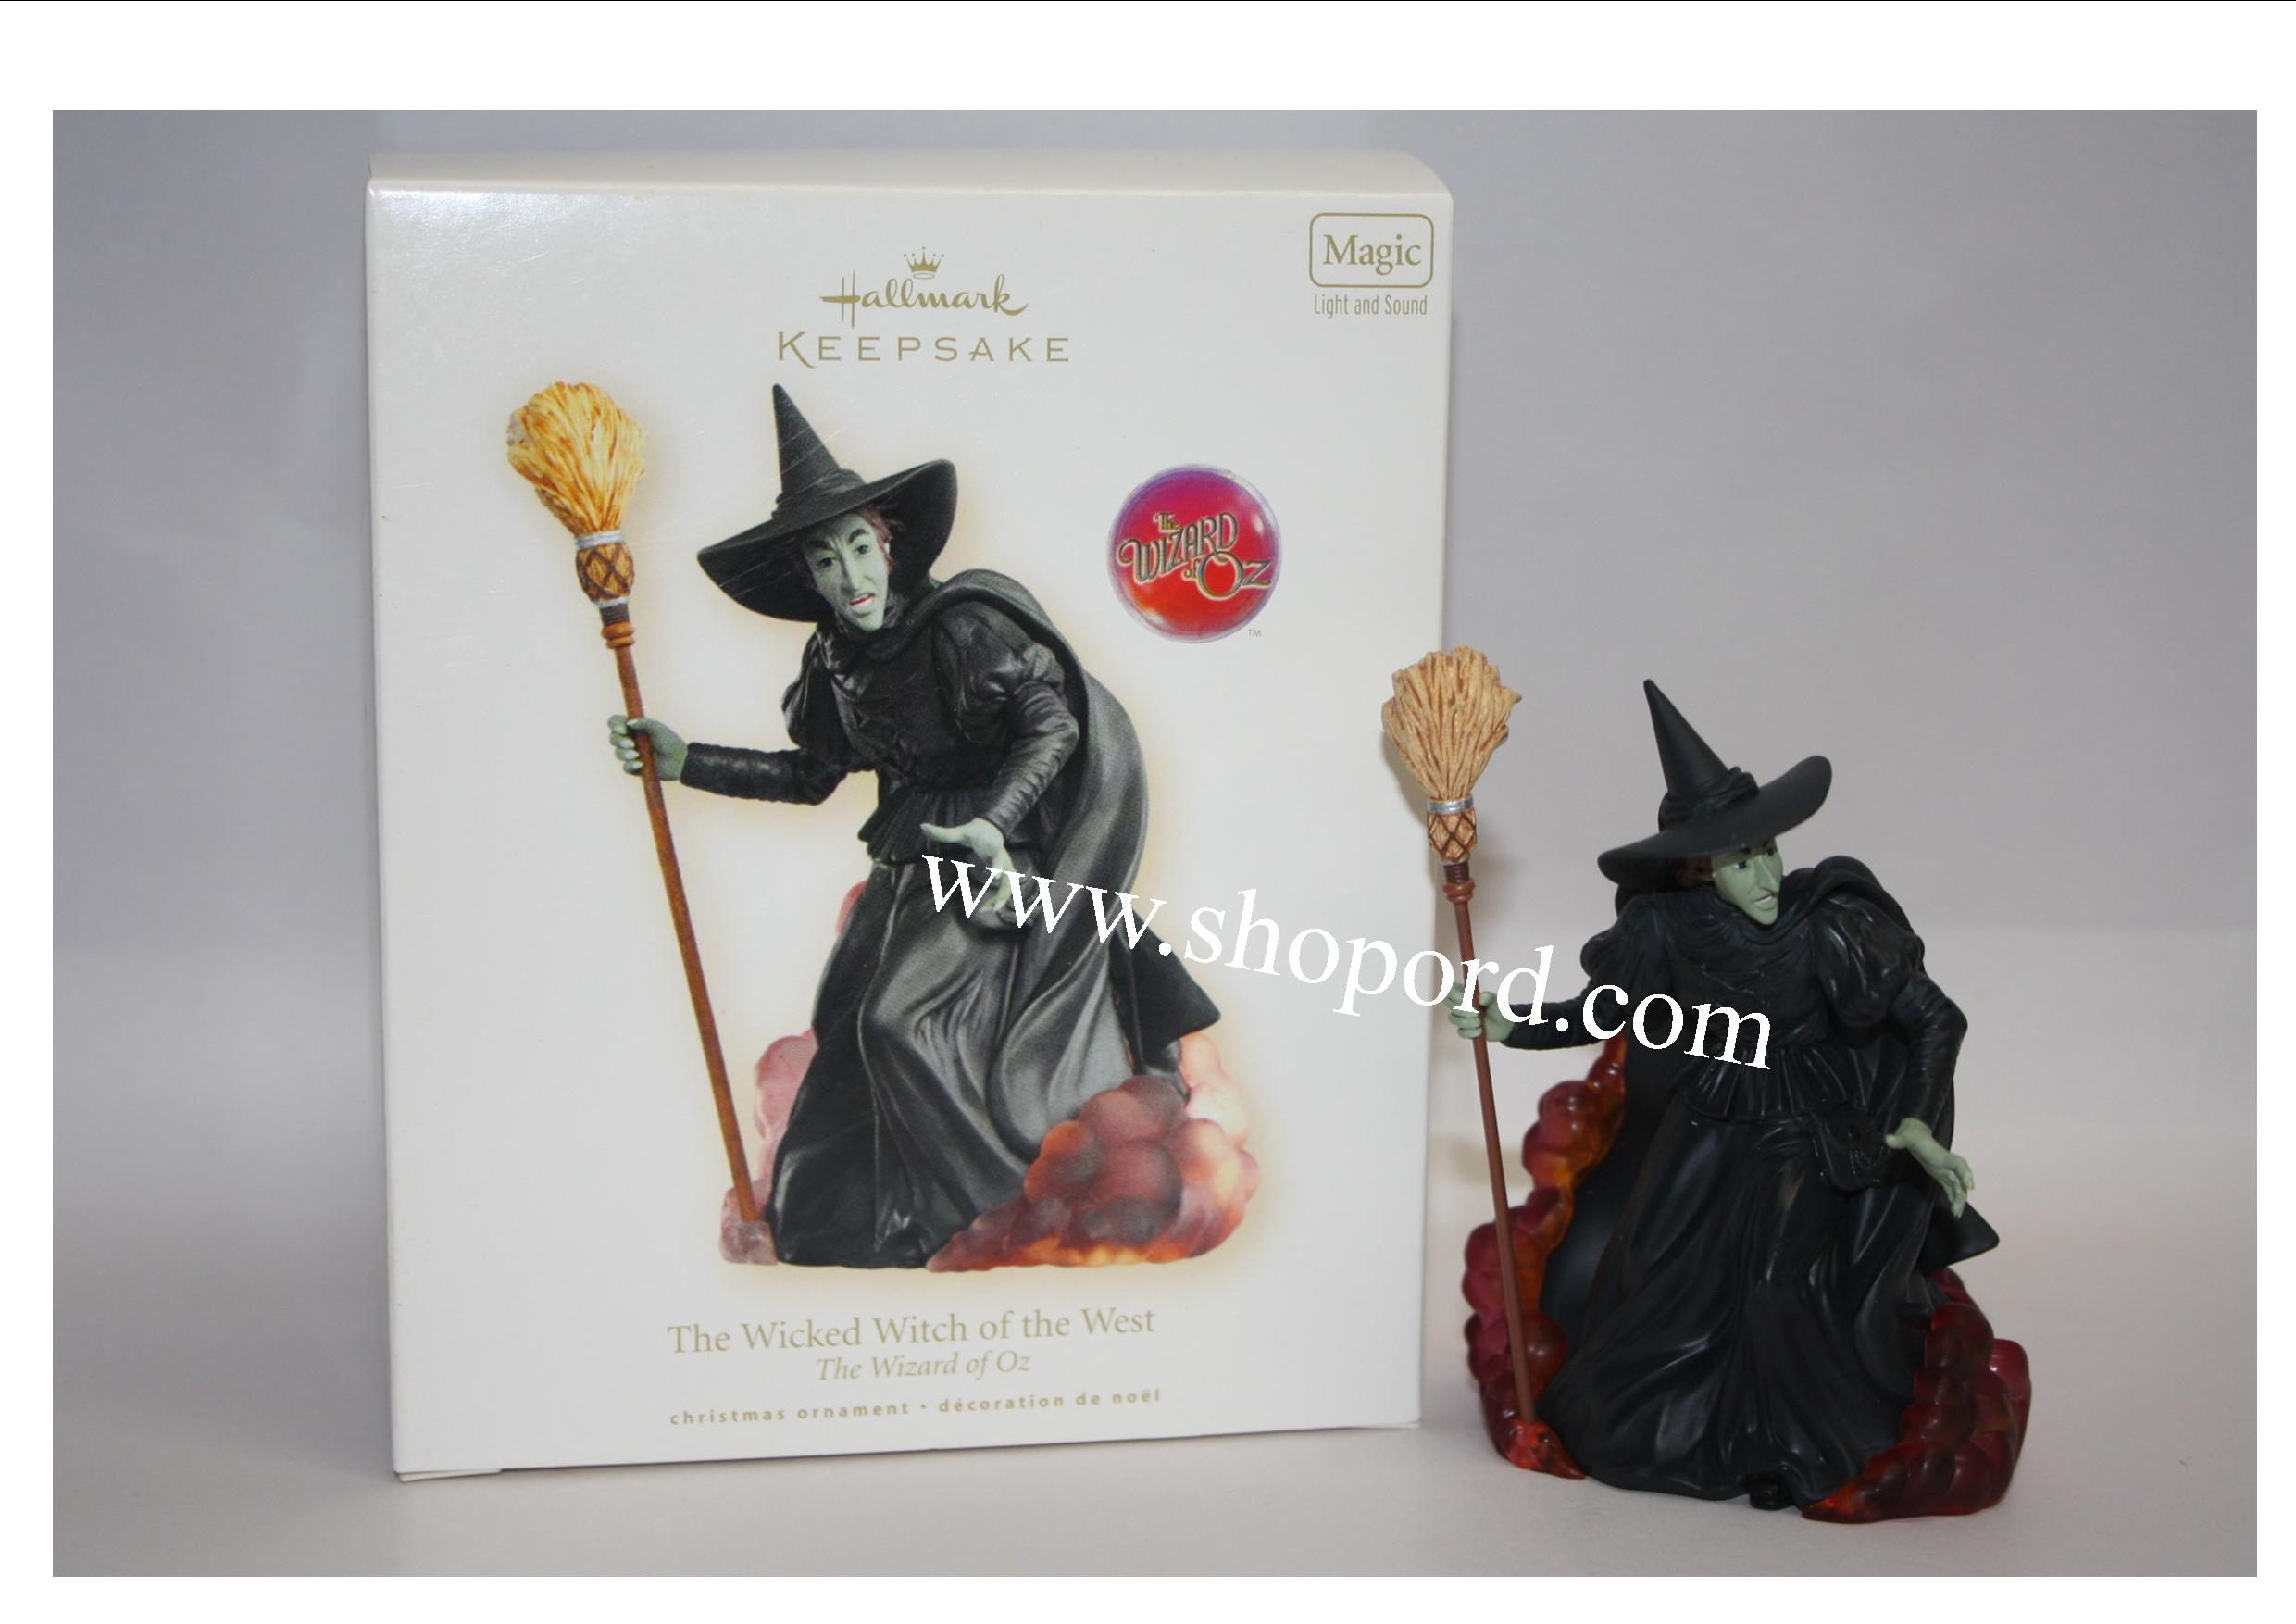 Hallmark 2007 The Wicked Witch of the West The Wizard of Oz Magic Ornament QXI4119